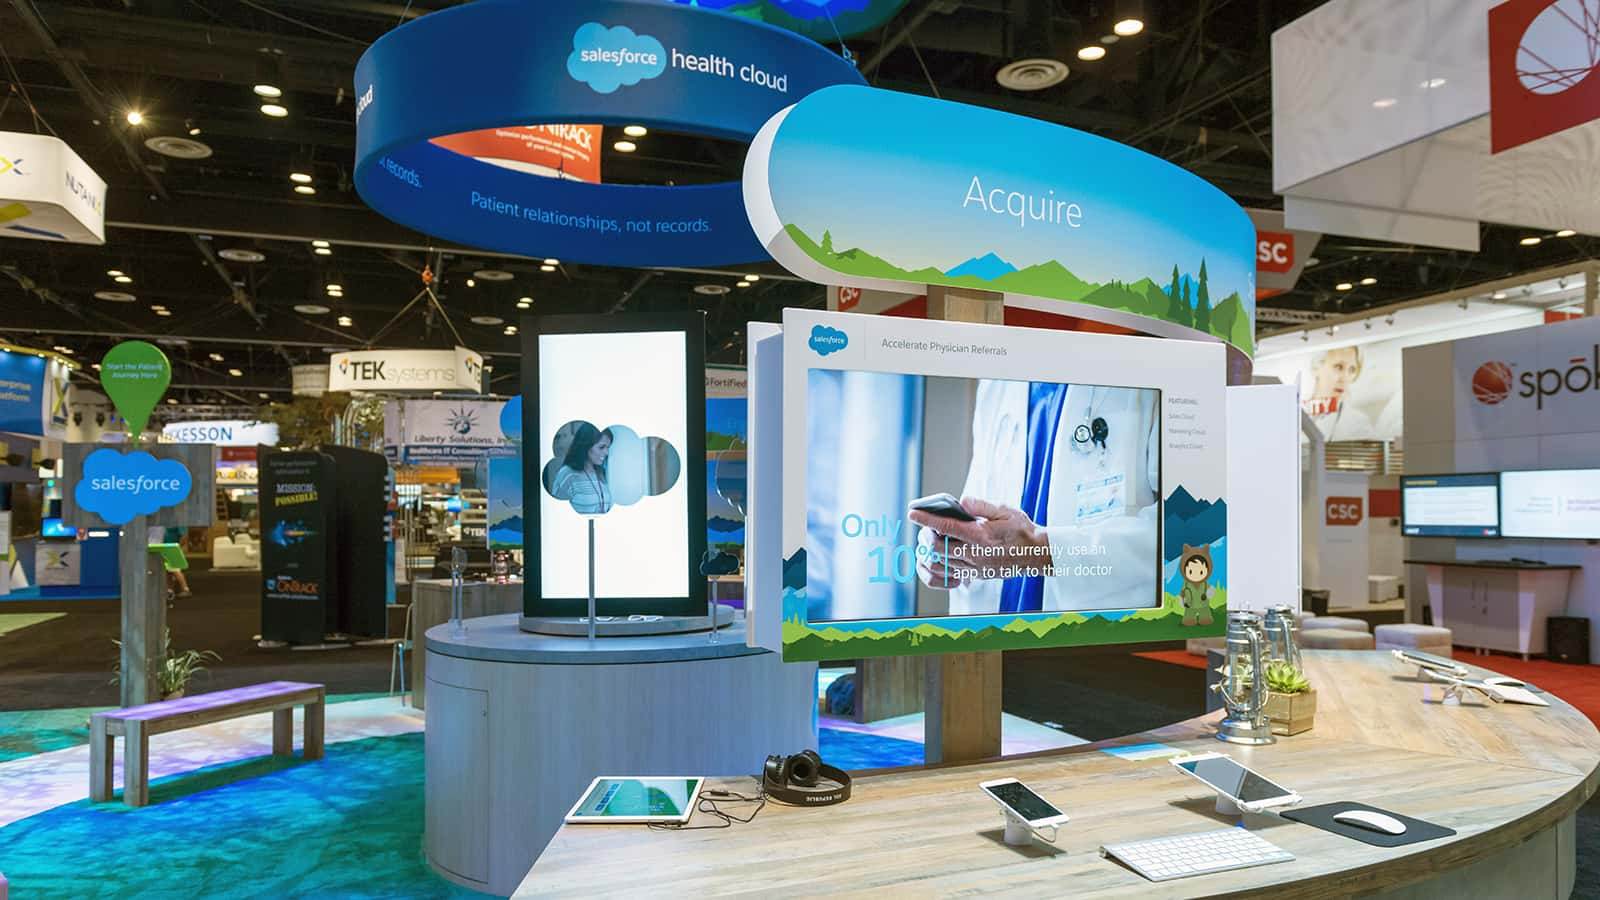 Close-up view of exhibit elements at the Salesforce Health HIMSS 2018 experience.